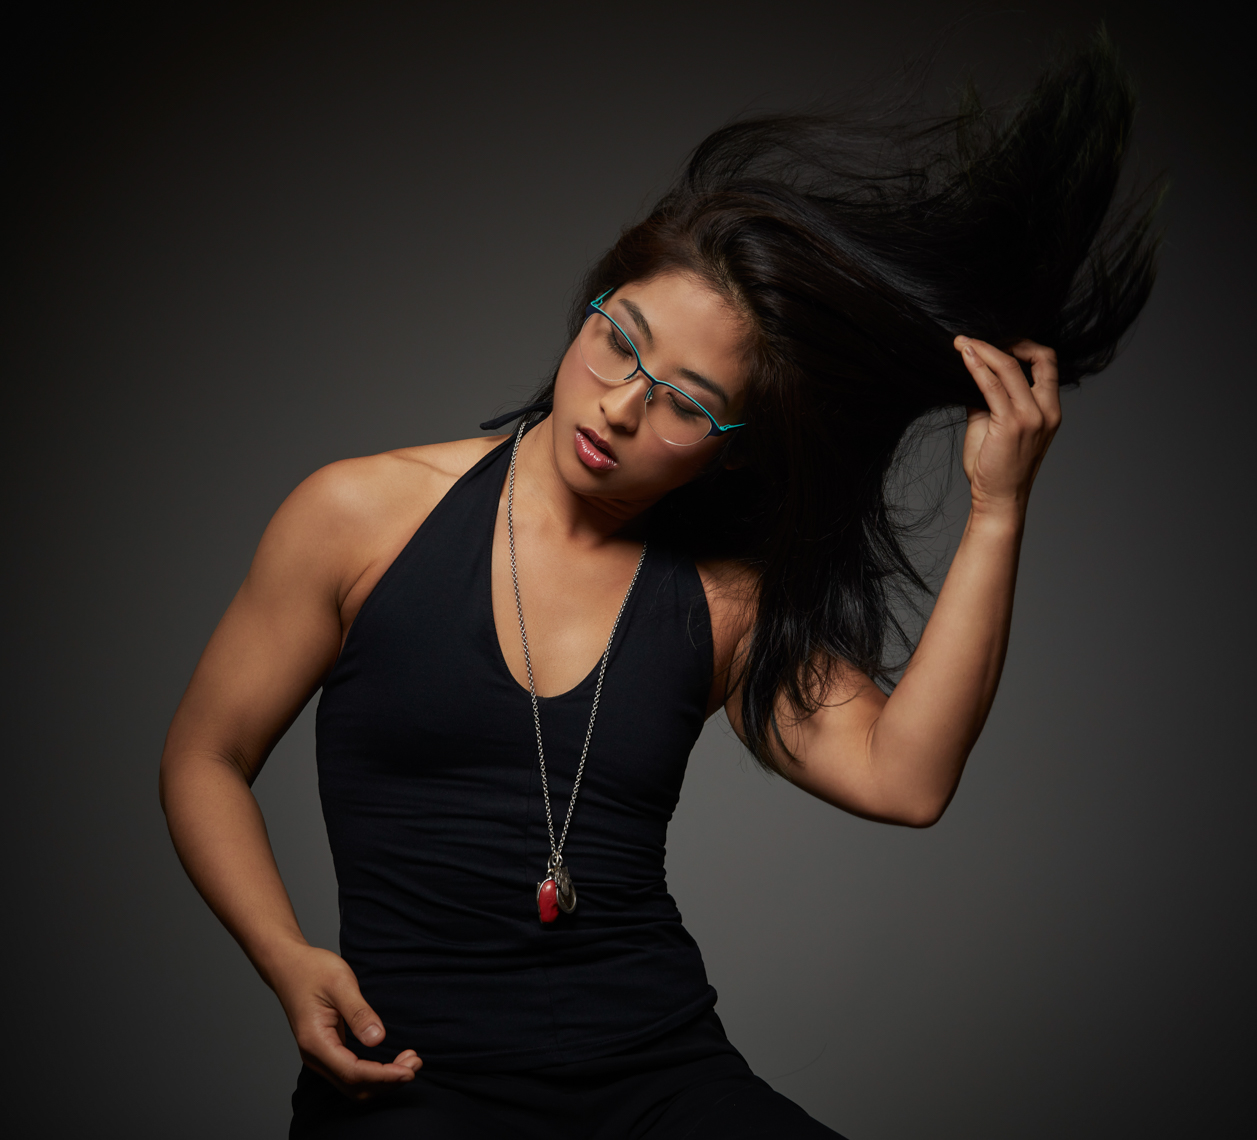 Asian woman flipping long dark hair wearing black low neck t-shirt and glasses San Francisco fashion photographer